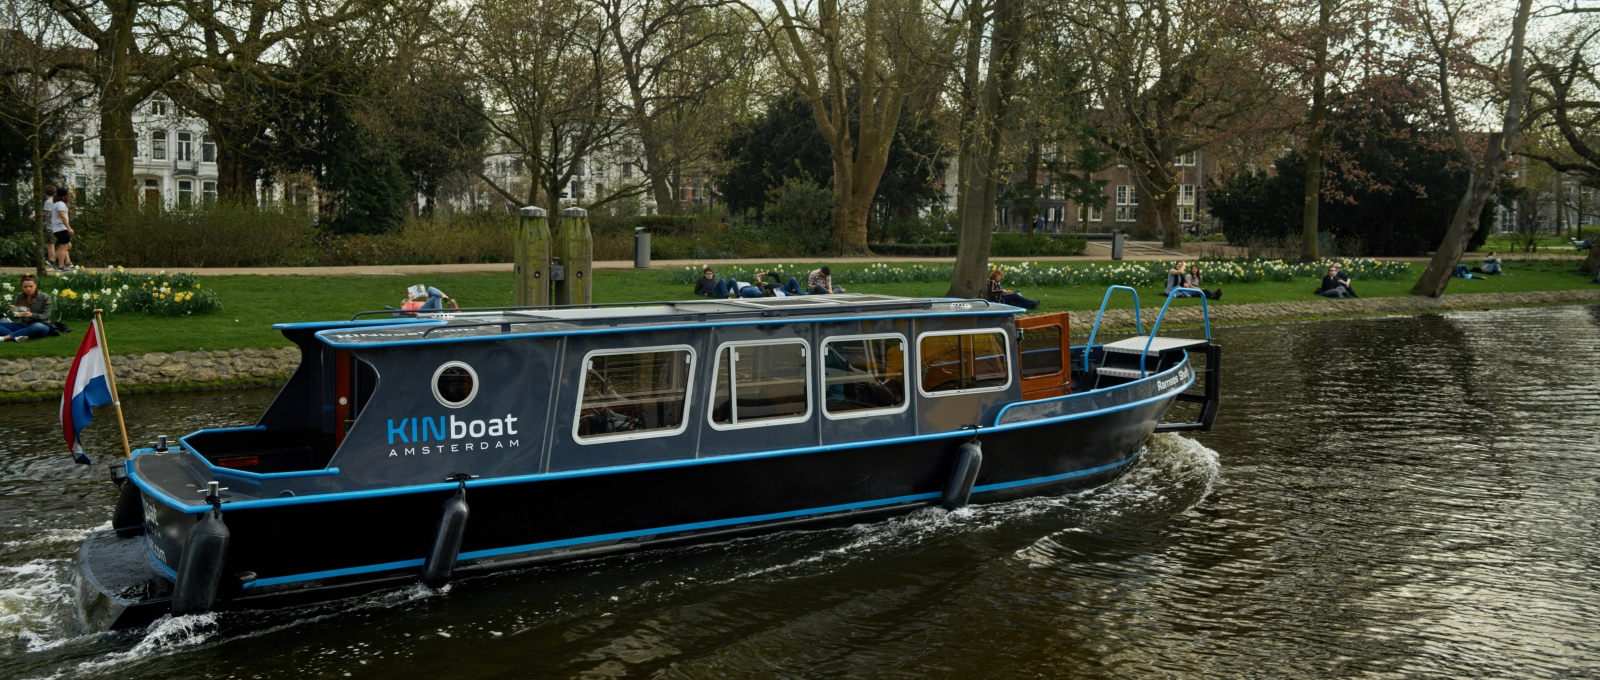 Canal cruise - small private boat